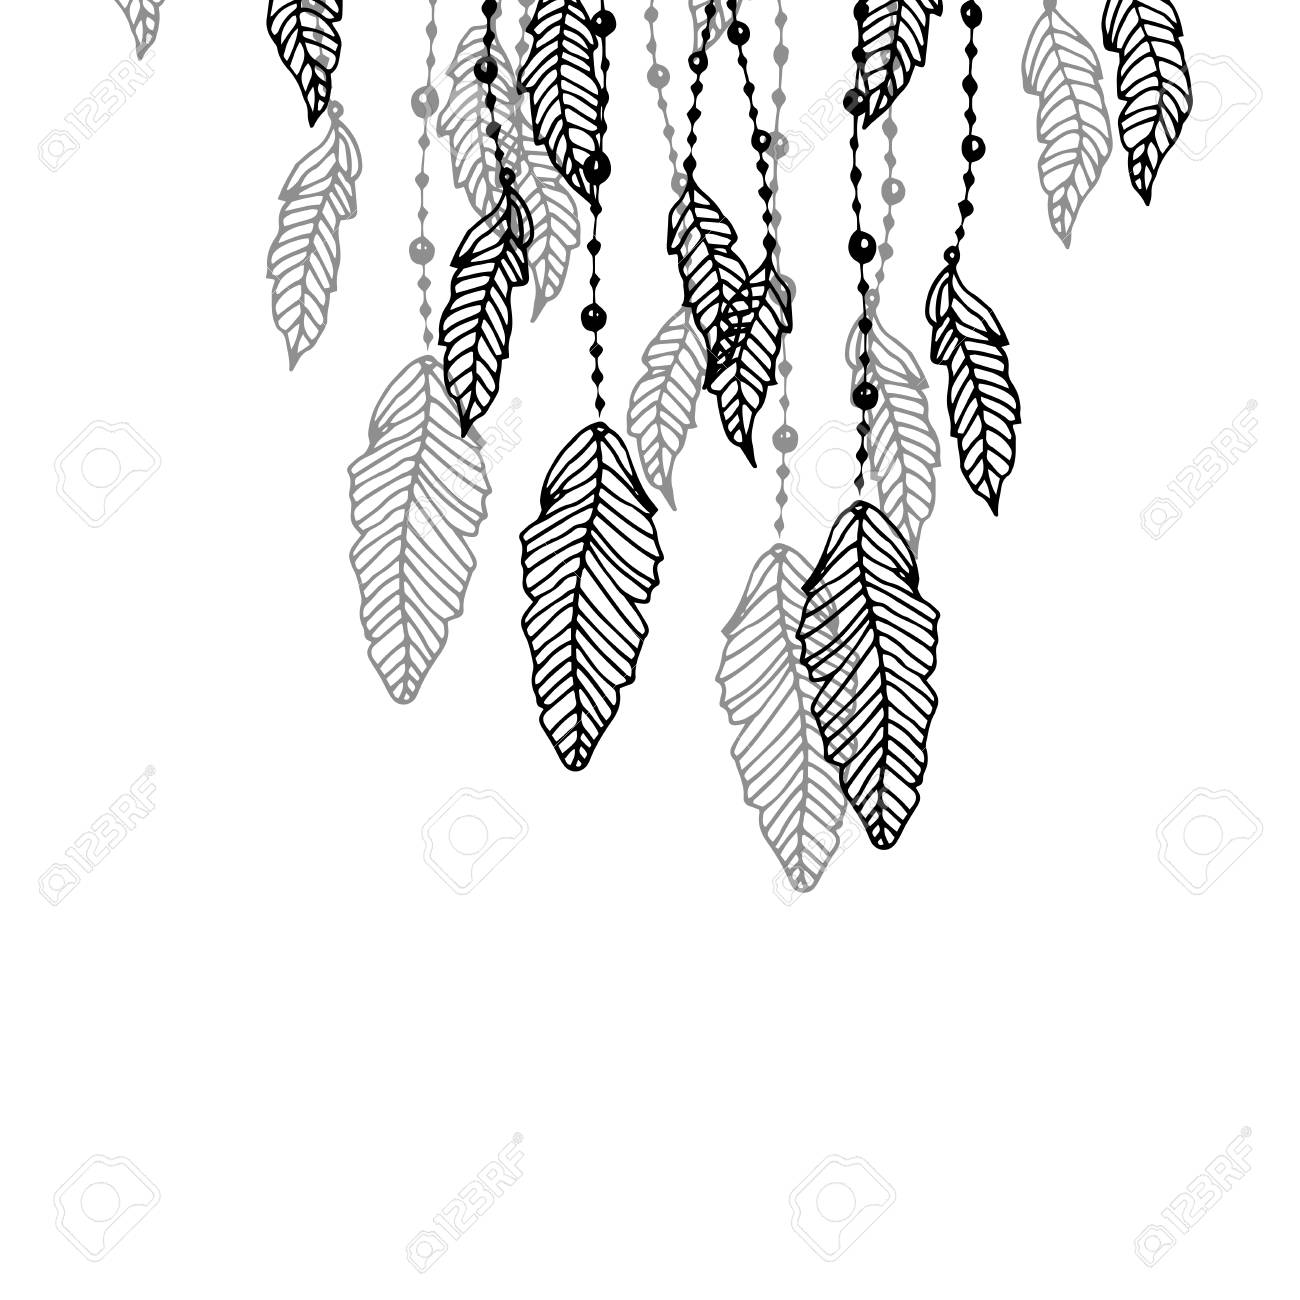 Hanging black and grey stylized doodle feathers isolated on